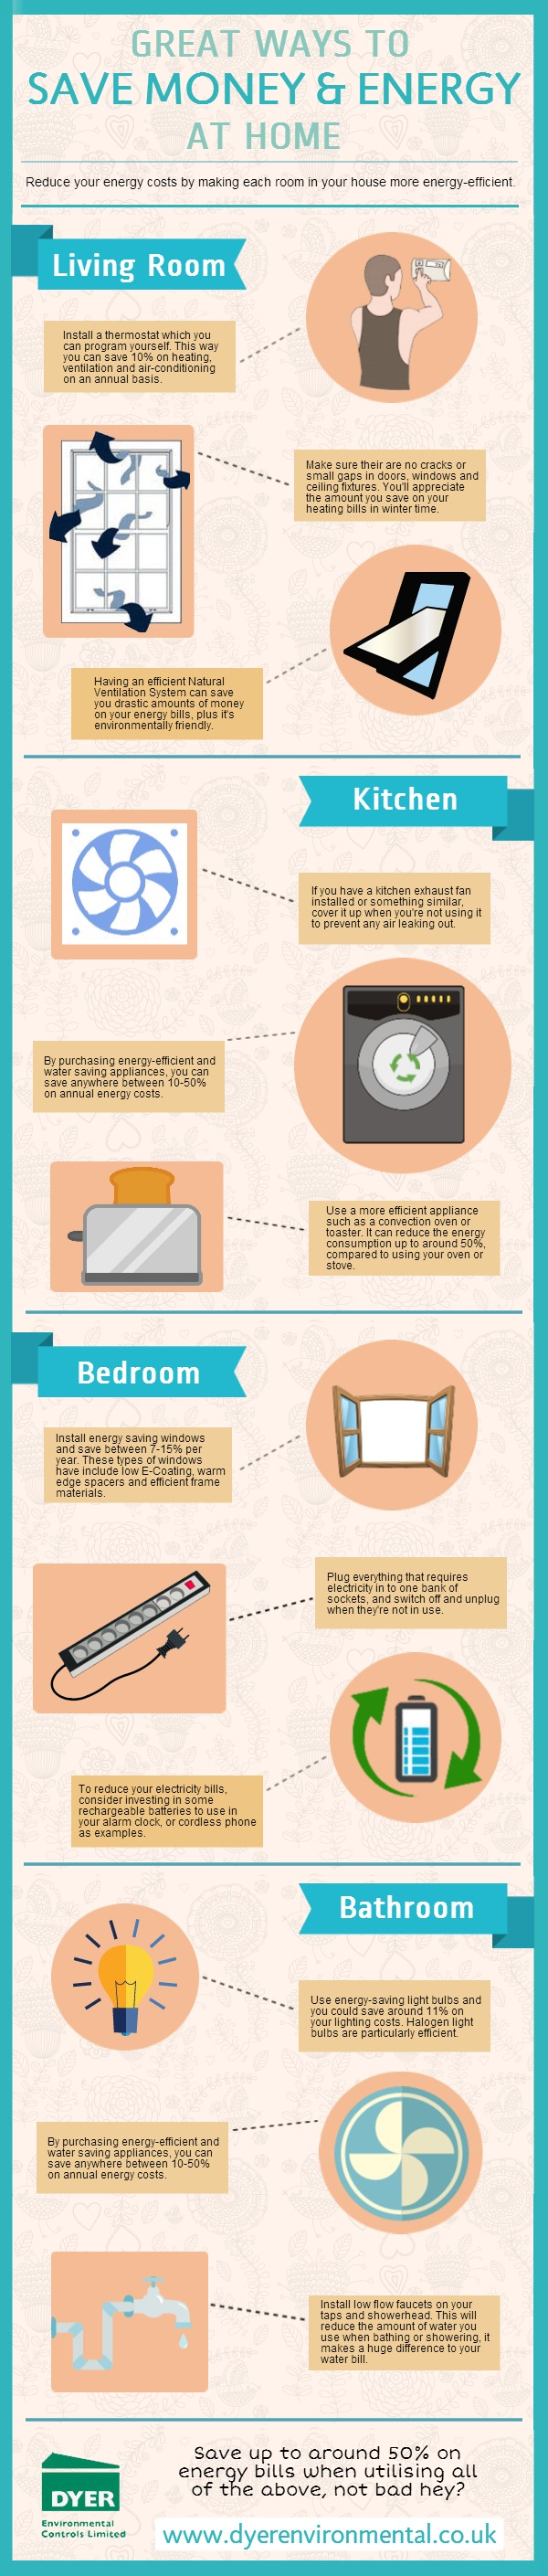 Save-Money-and-Energy-at-Home